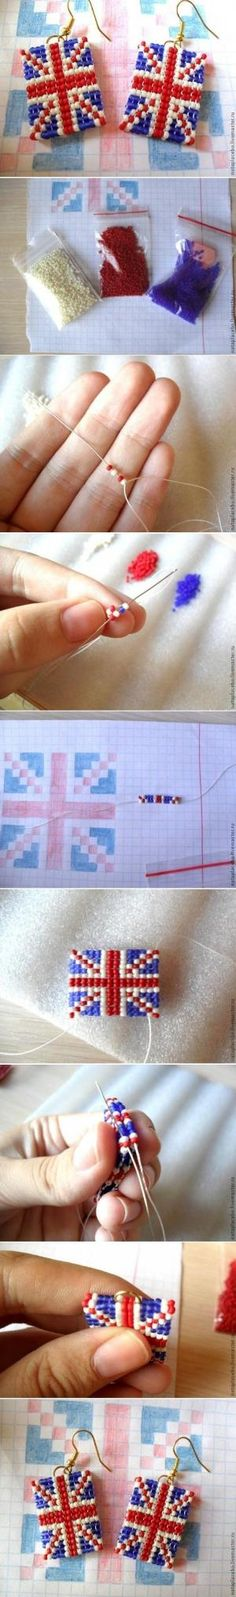 How to make beads or Pearls Earrings Union Jack step by step DIY tutorial instructions, How to, how to do, diy instructions, crafts, do it y by Mary Smith fSesz